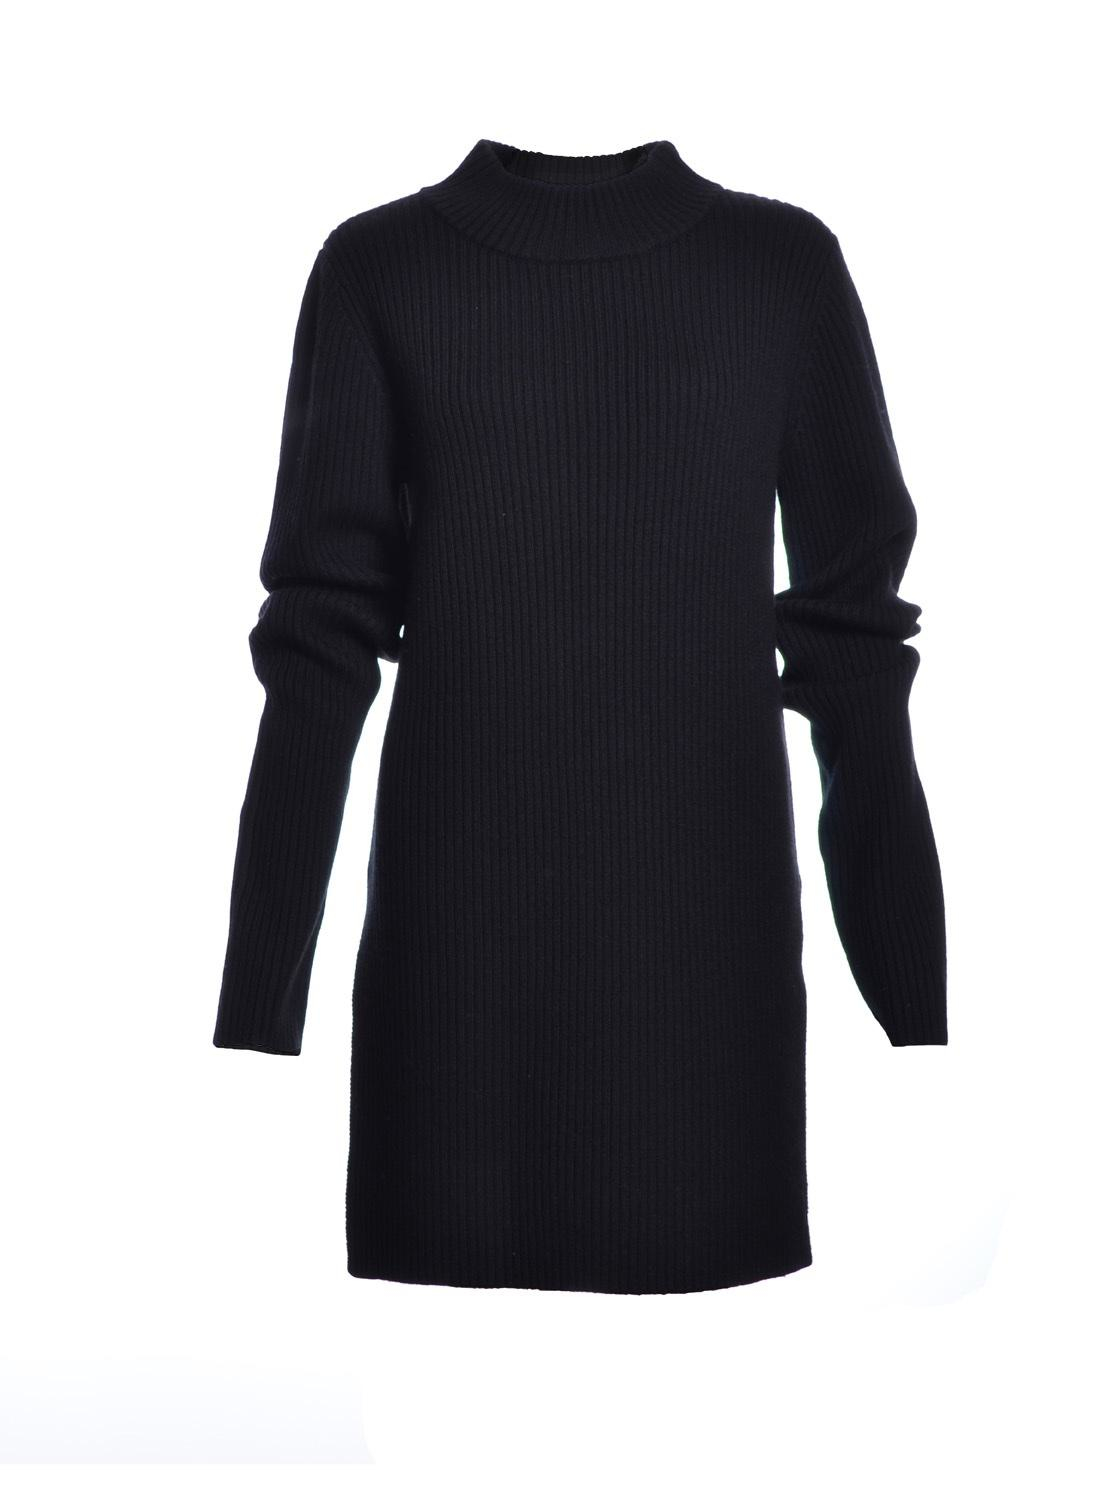 Charlie May Black Long Ribbed Knit Tunic Top Sold Out In